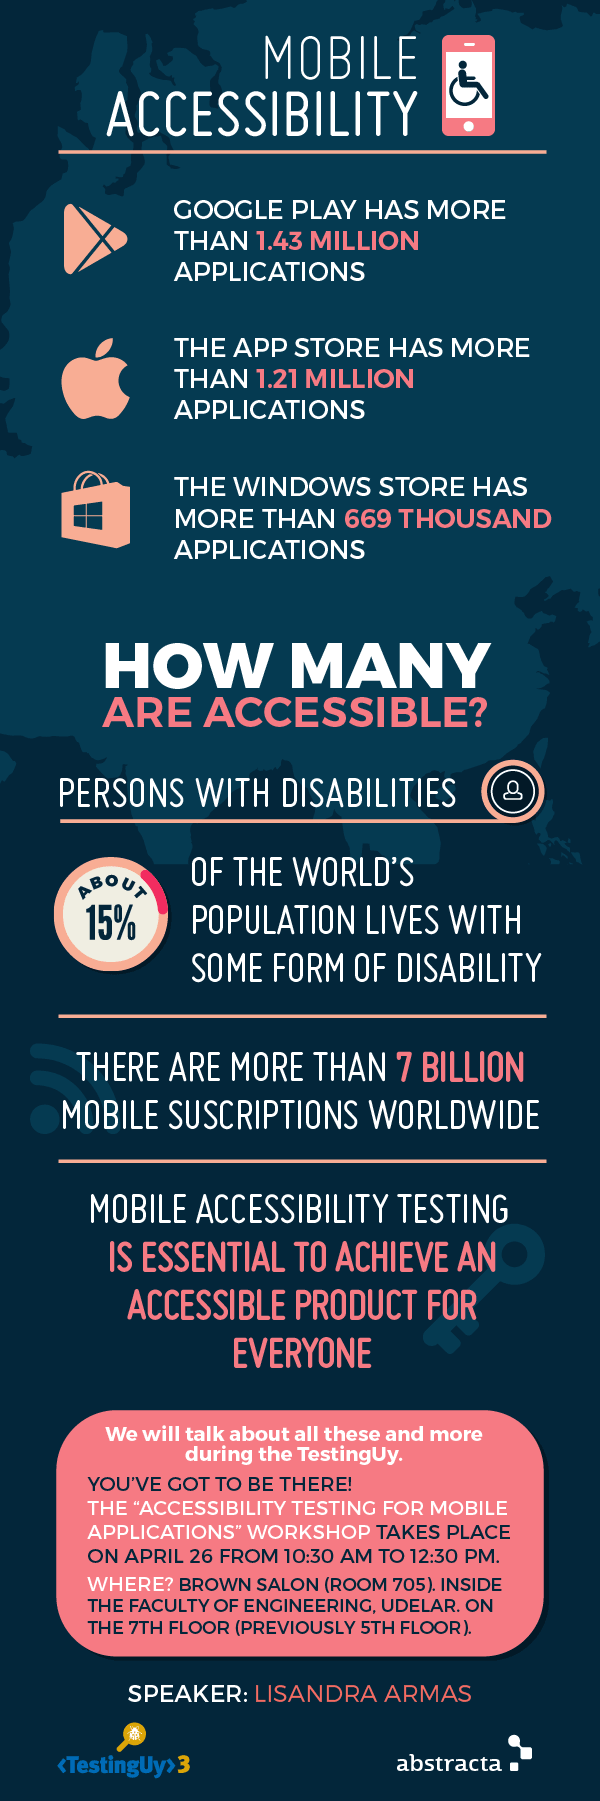 Mobile Accessibility Infographic